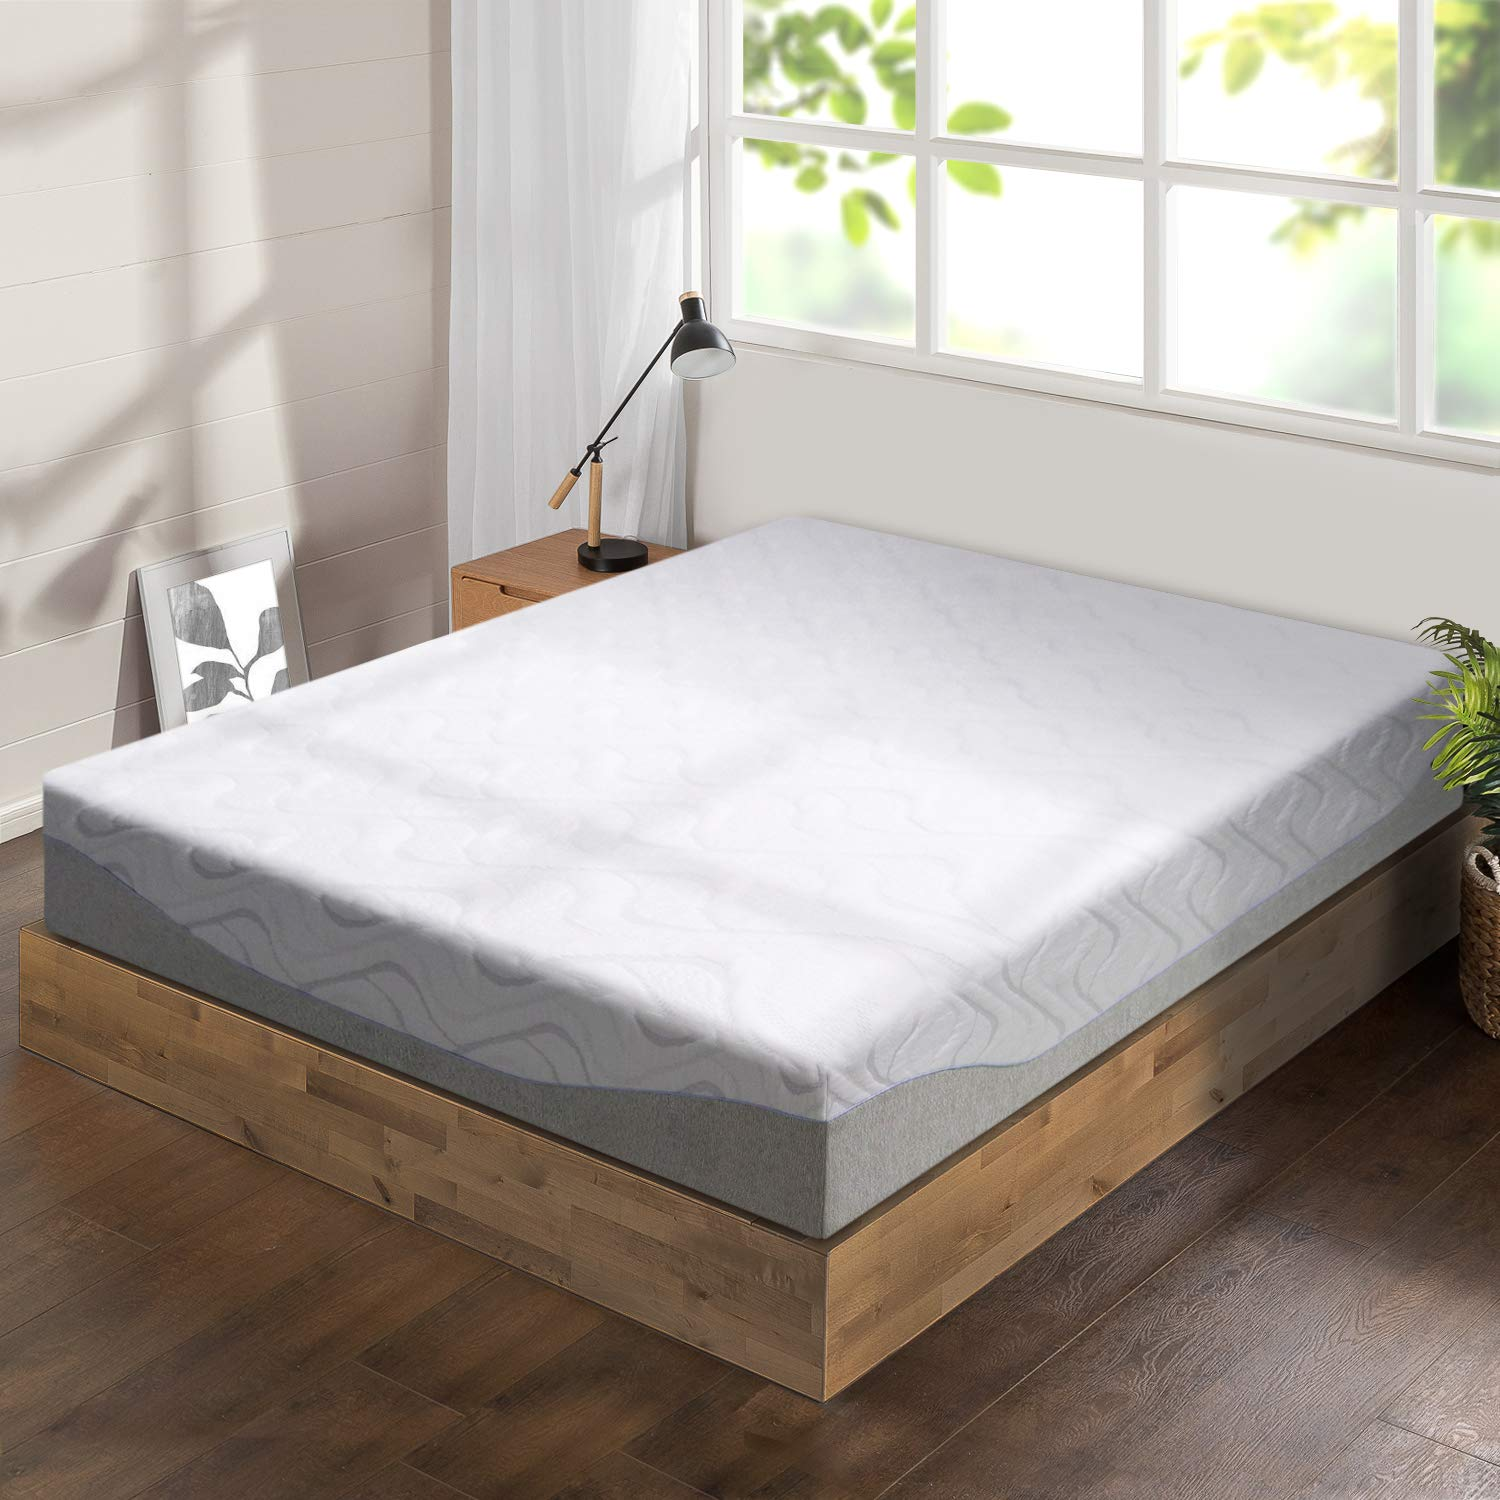 Best Price Mattress Best Mattress on Amazon Review by www.snoremagazine.com